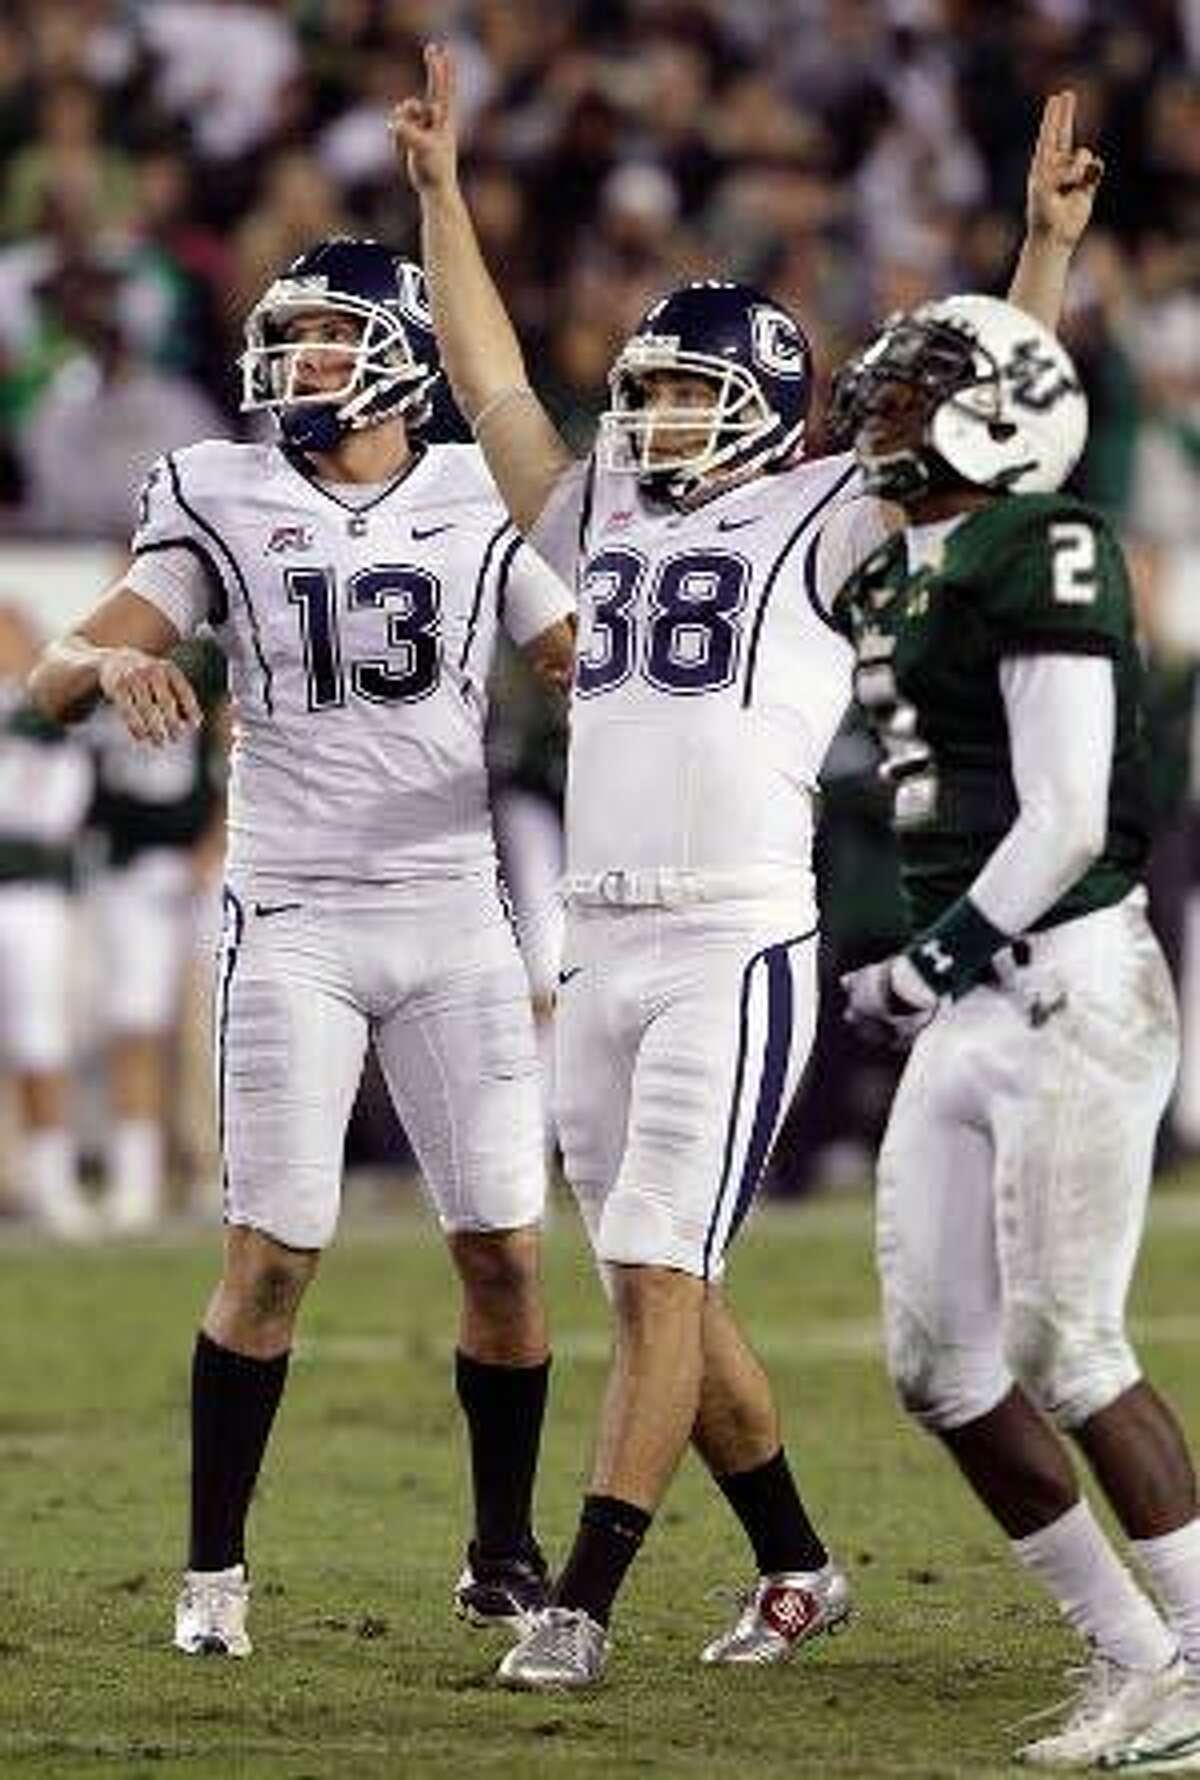 Connecticut kicker Dave Teggart (38) celebrates with holder Chad Christen (13) after kicking a 52-yard field goal with 17 seconds left to help defeat South Florida 19-16 during Saturday's game in Tampa, Fla. South Florida cornerback Quenton Washington (2) looks on. The Huskies grabbed the Big East's automatic BCS berth with the victory. (AP Photo/Chris O'Meara)